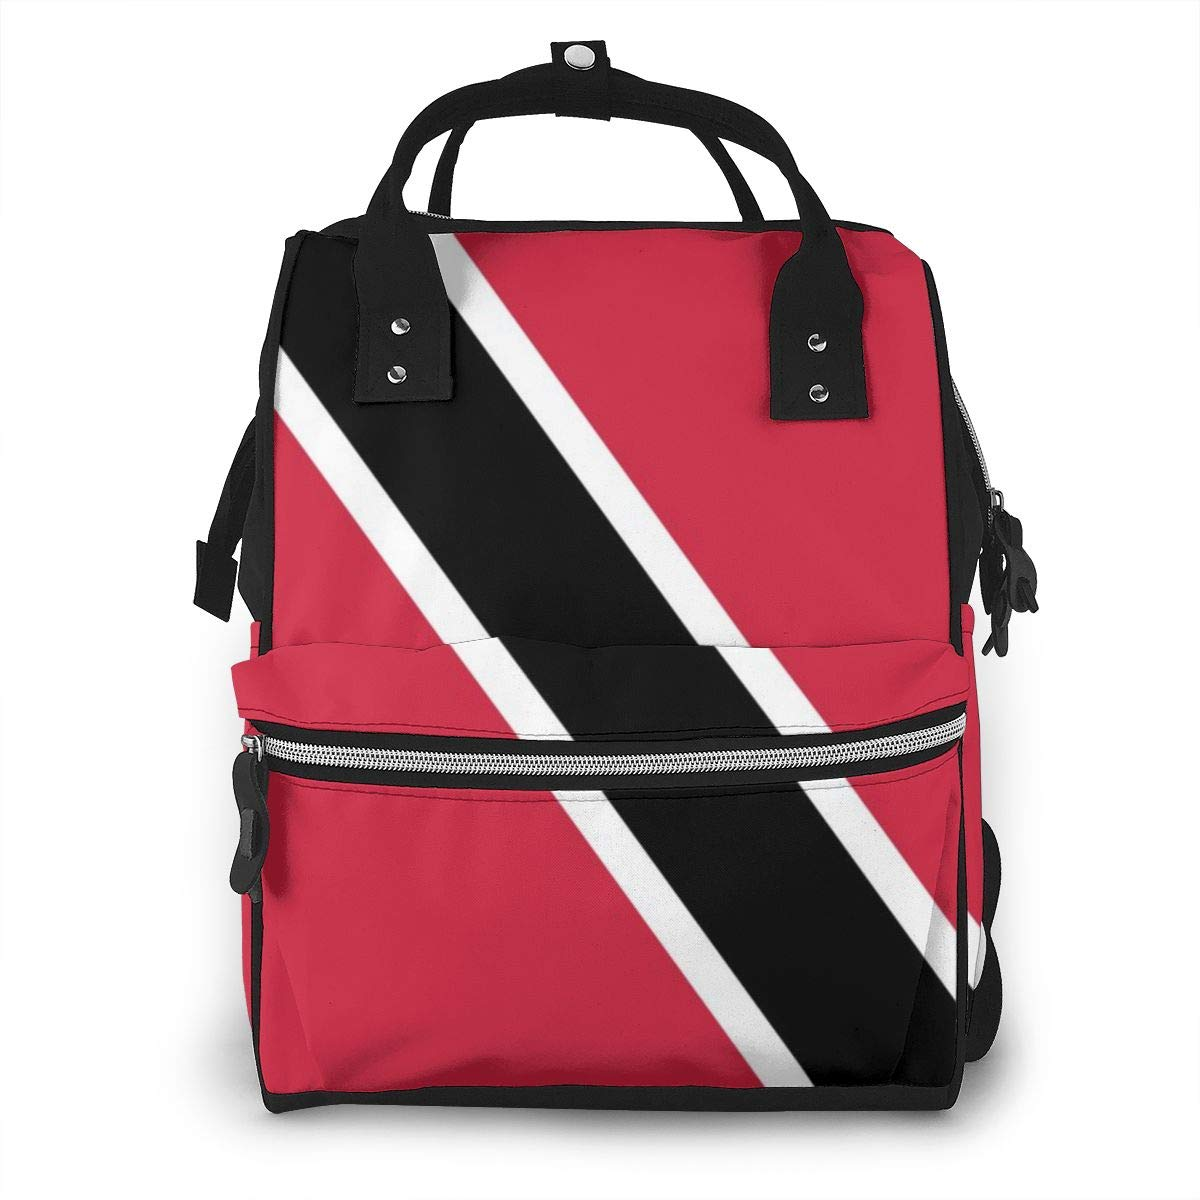 Trinidad and Tobago Flag Emblem Fashion Diaper Bags Mummy Backpack Multi Functions Waterproof Large Capacity Nappy Bag Nursing Bag for Baby Care for Traveling